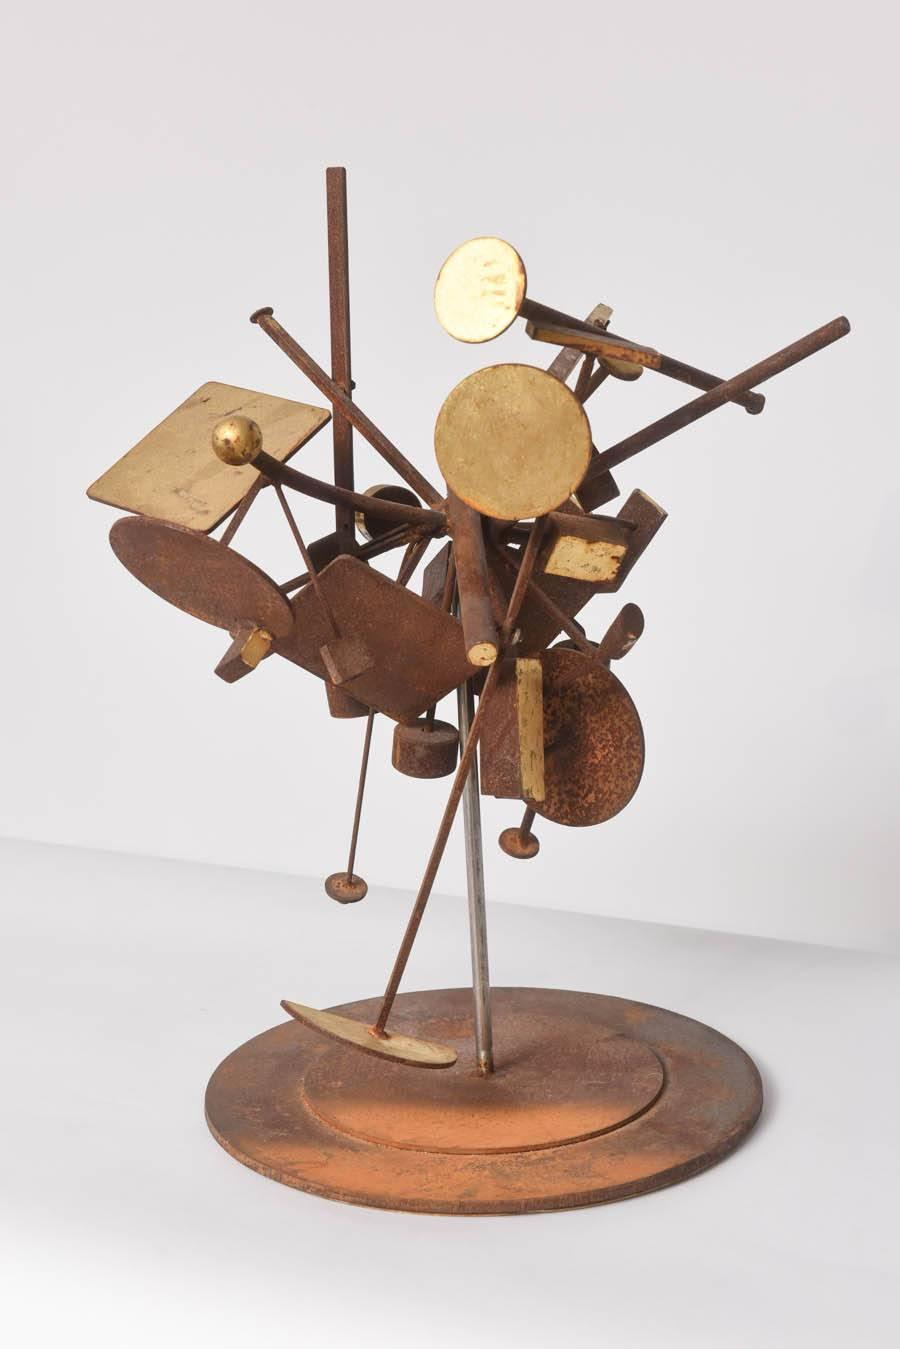 Kinetic Dimensional Works Abstract Expressionism Sculpture For Sale At 1stdibs